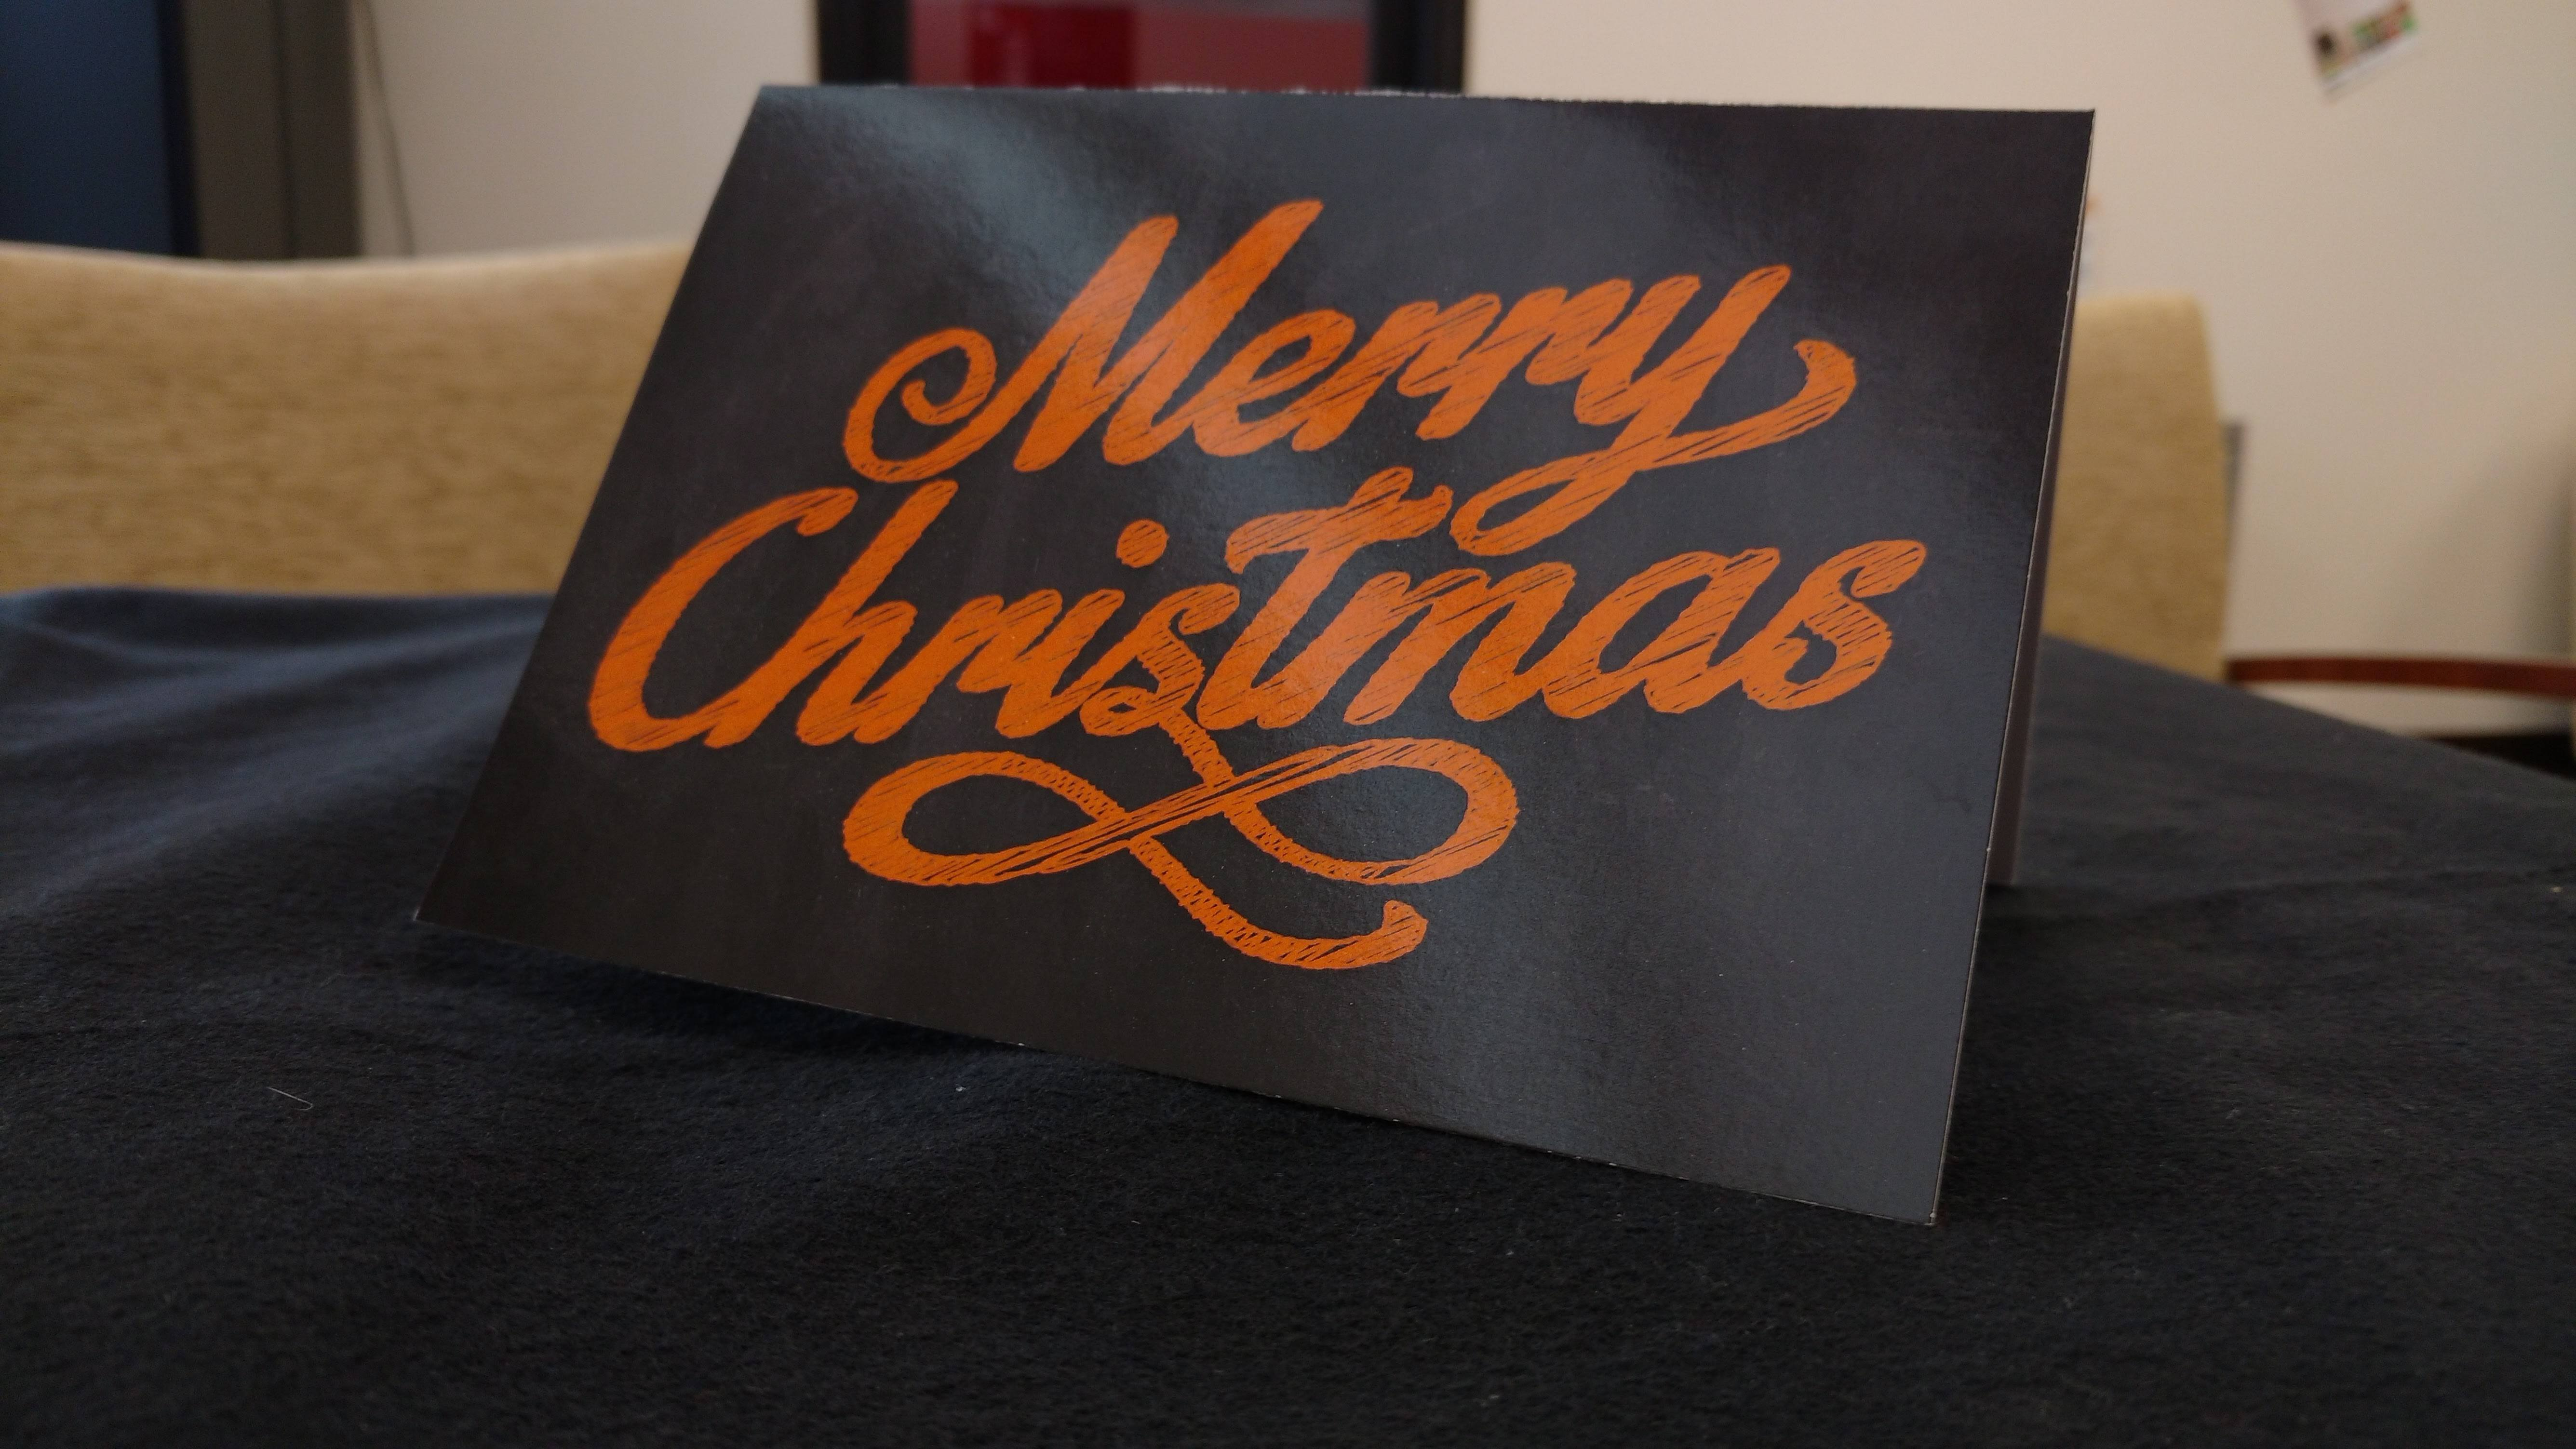 Ditch Witch Christmas Card Side B